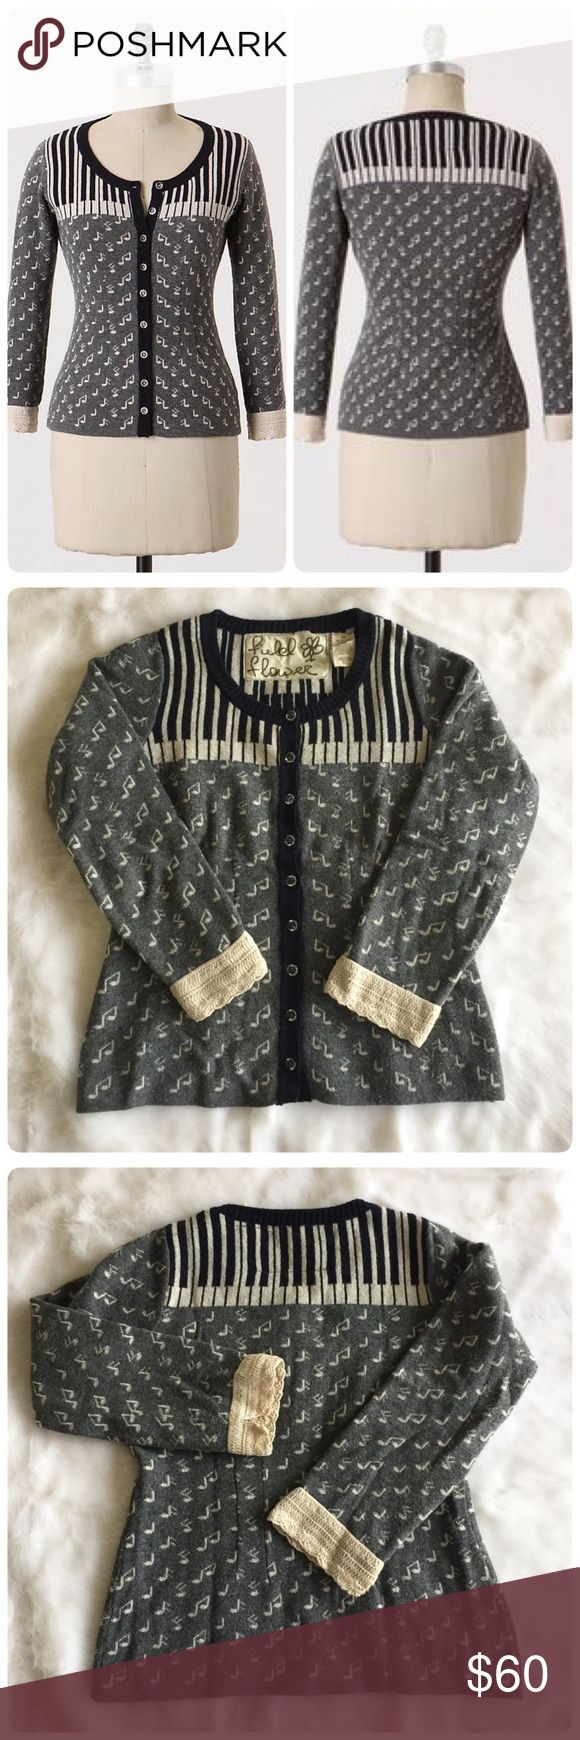 🎹🎼 Anthropologie Chopsticks Cardigan XS 🎼🎹 Cheaper on merc@ri. As ivories tickle the shoulders of this cozy sweater, the metallic flecked notes they produce waltz around below. From Field Flower by Wendi Reed.  Button front Viscose, nylon, cotton, lambswool, angora, cashmere, metallic fibers Dry clean Imported. Gorgeous  Anthro cardigan. Super unique & cute with gorgeous vintage & Victorian style 3 quarter sleeves. Wore only couple times. In EUC.🎼🎹🎼 by Field Flower... Anthropologie…